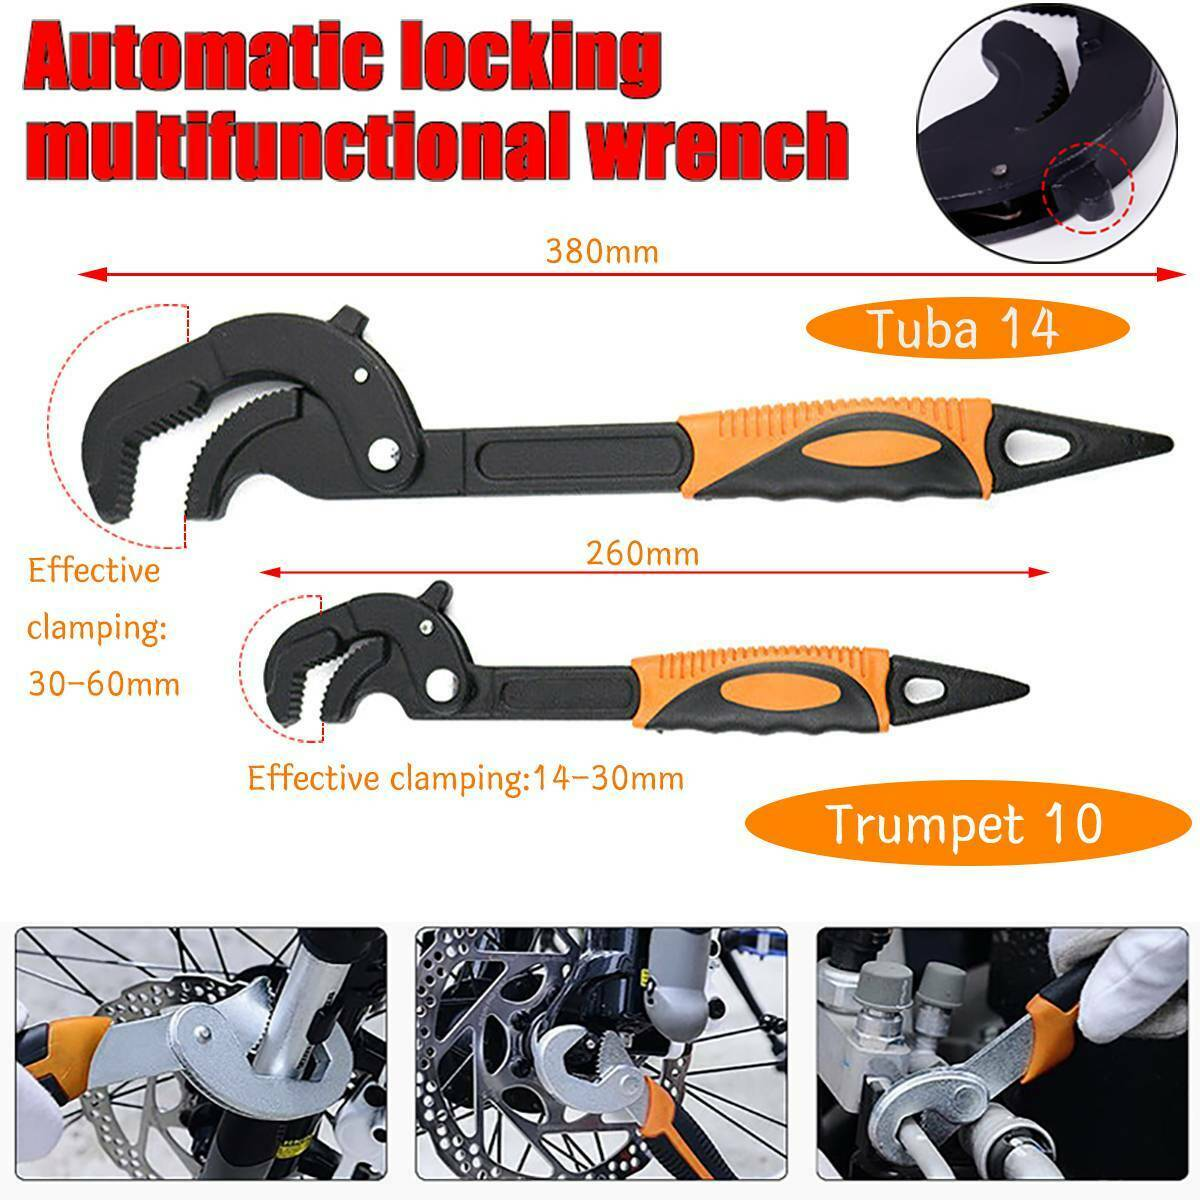 2PC 14-30mm 30-60mm Adjustable Wrench Spanner Set Quick Snap and Grip Hand Tools